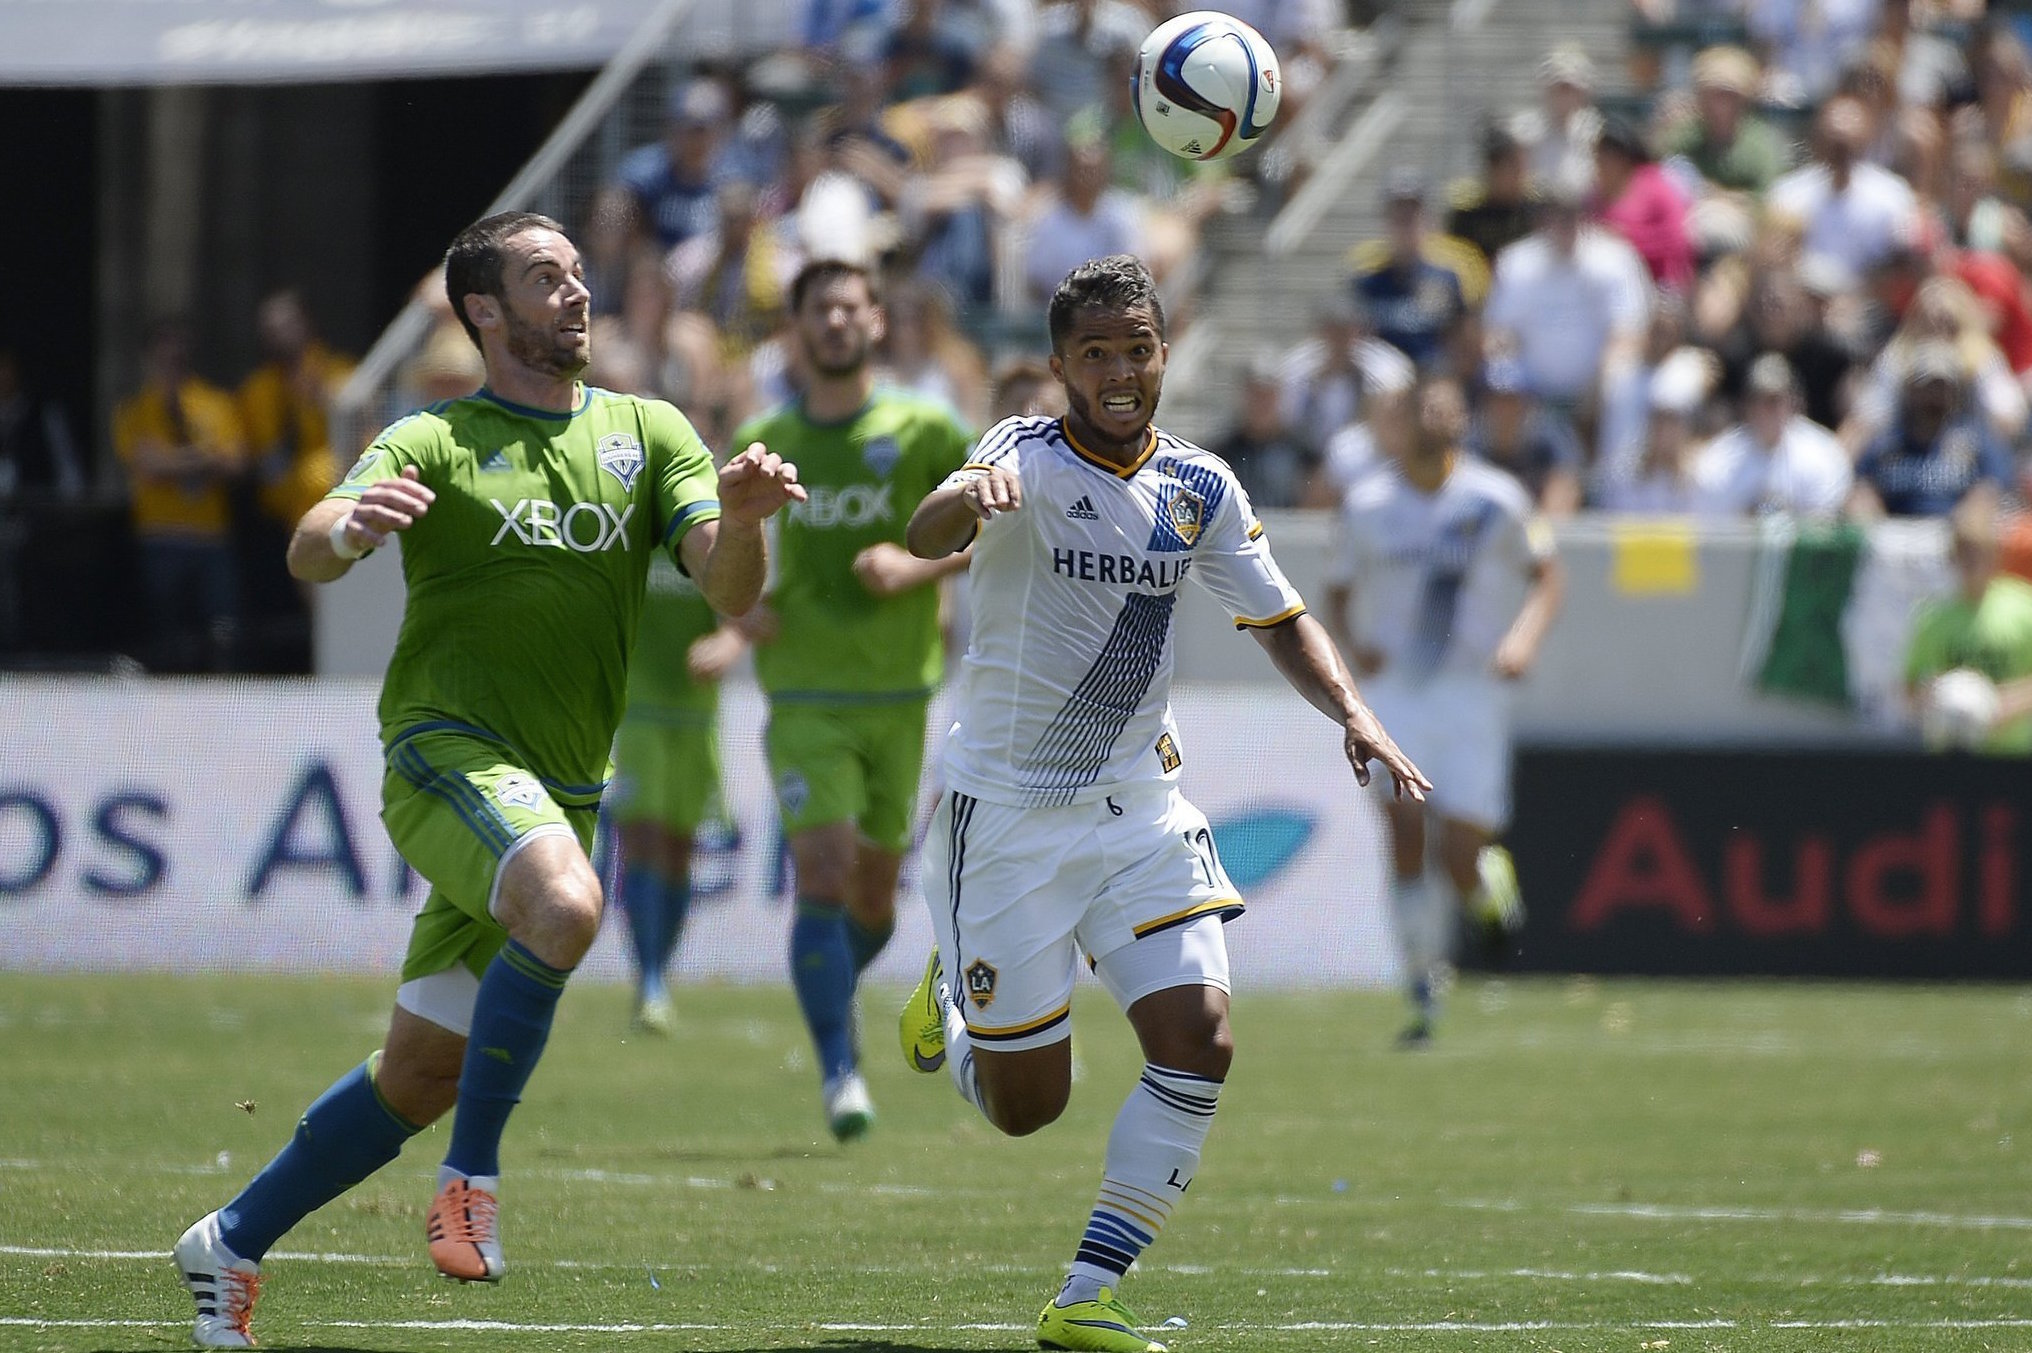 While Gio and Pineda Face Off, the MLS Should Strive to Overhaul Unequal Salaries